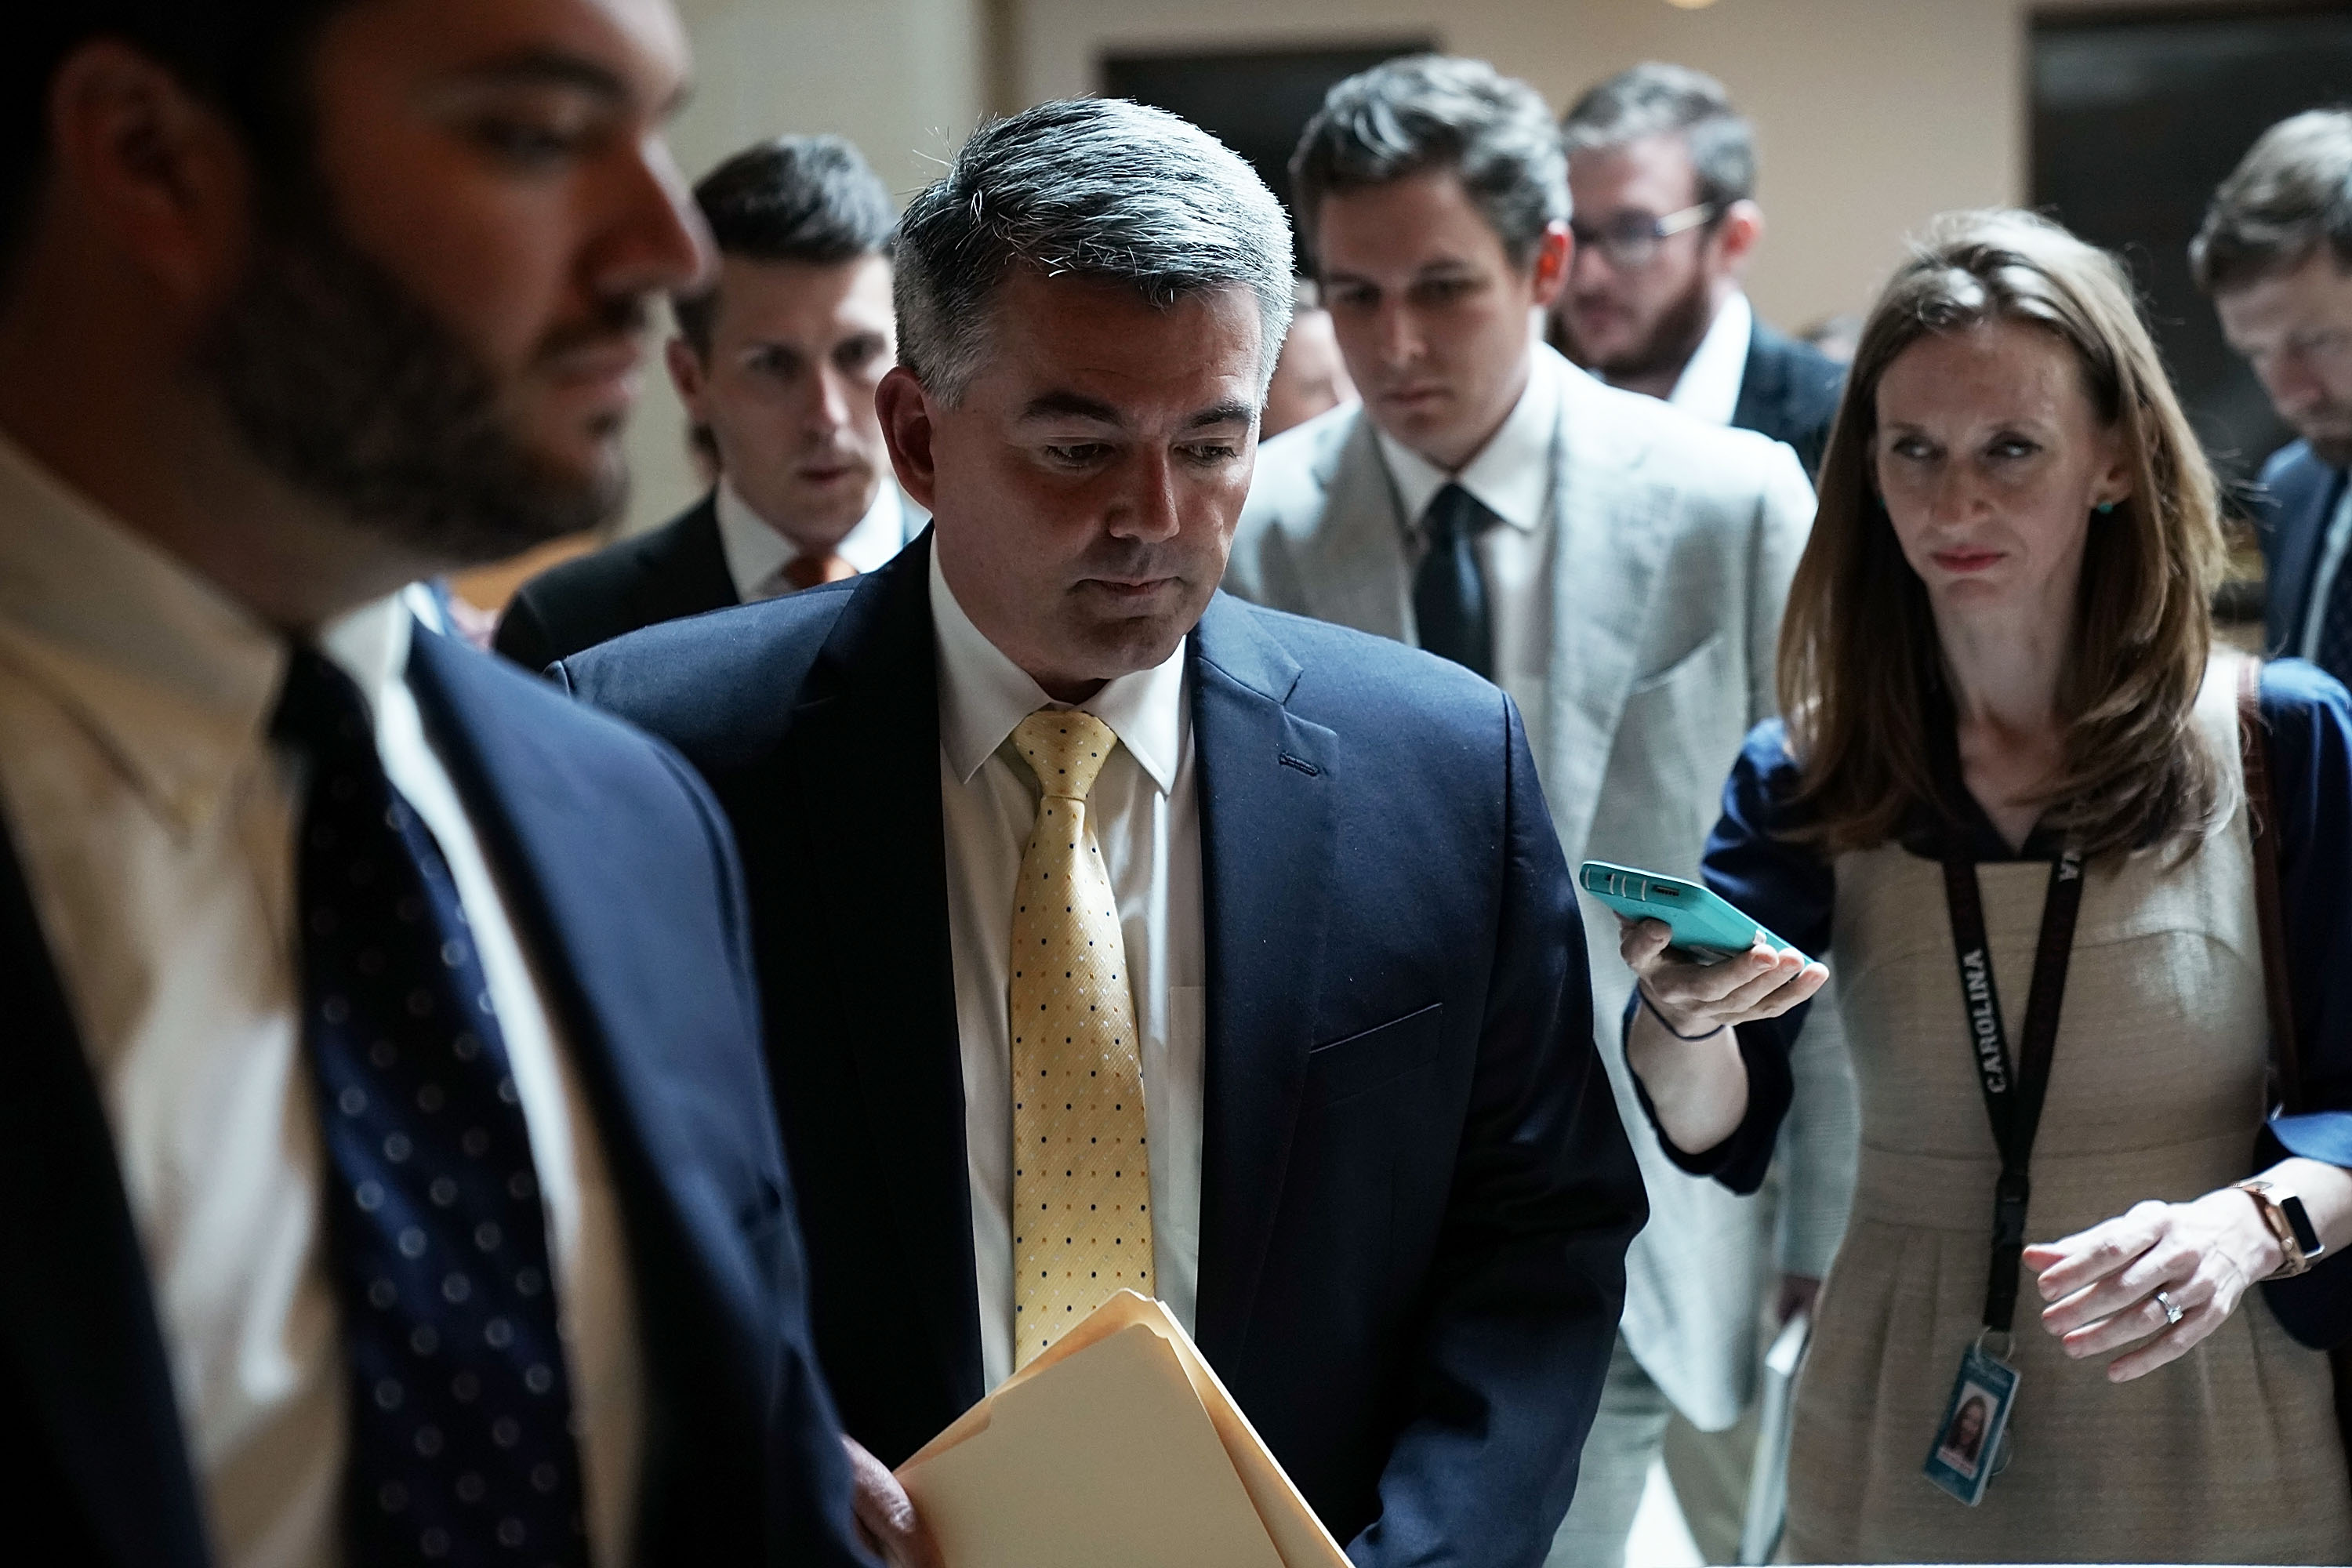 U.S. Sen. Cory Gardner arrives at the U.S. Capitol for a closed briefing August 22, 2018 in Washington, DC. (Photo by Alex Wong/Getty Images)